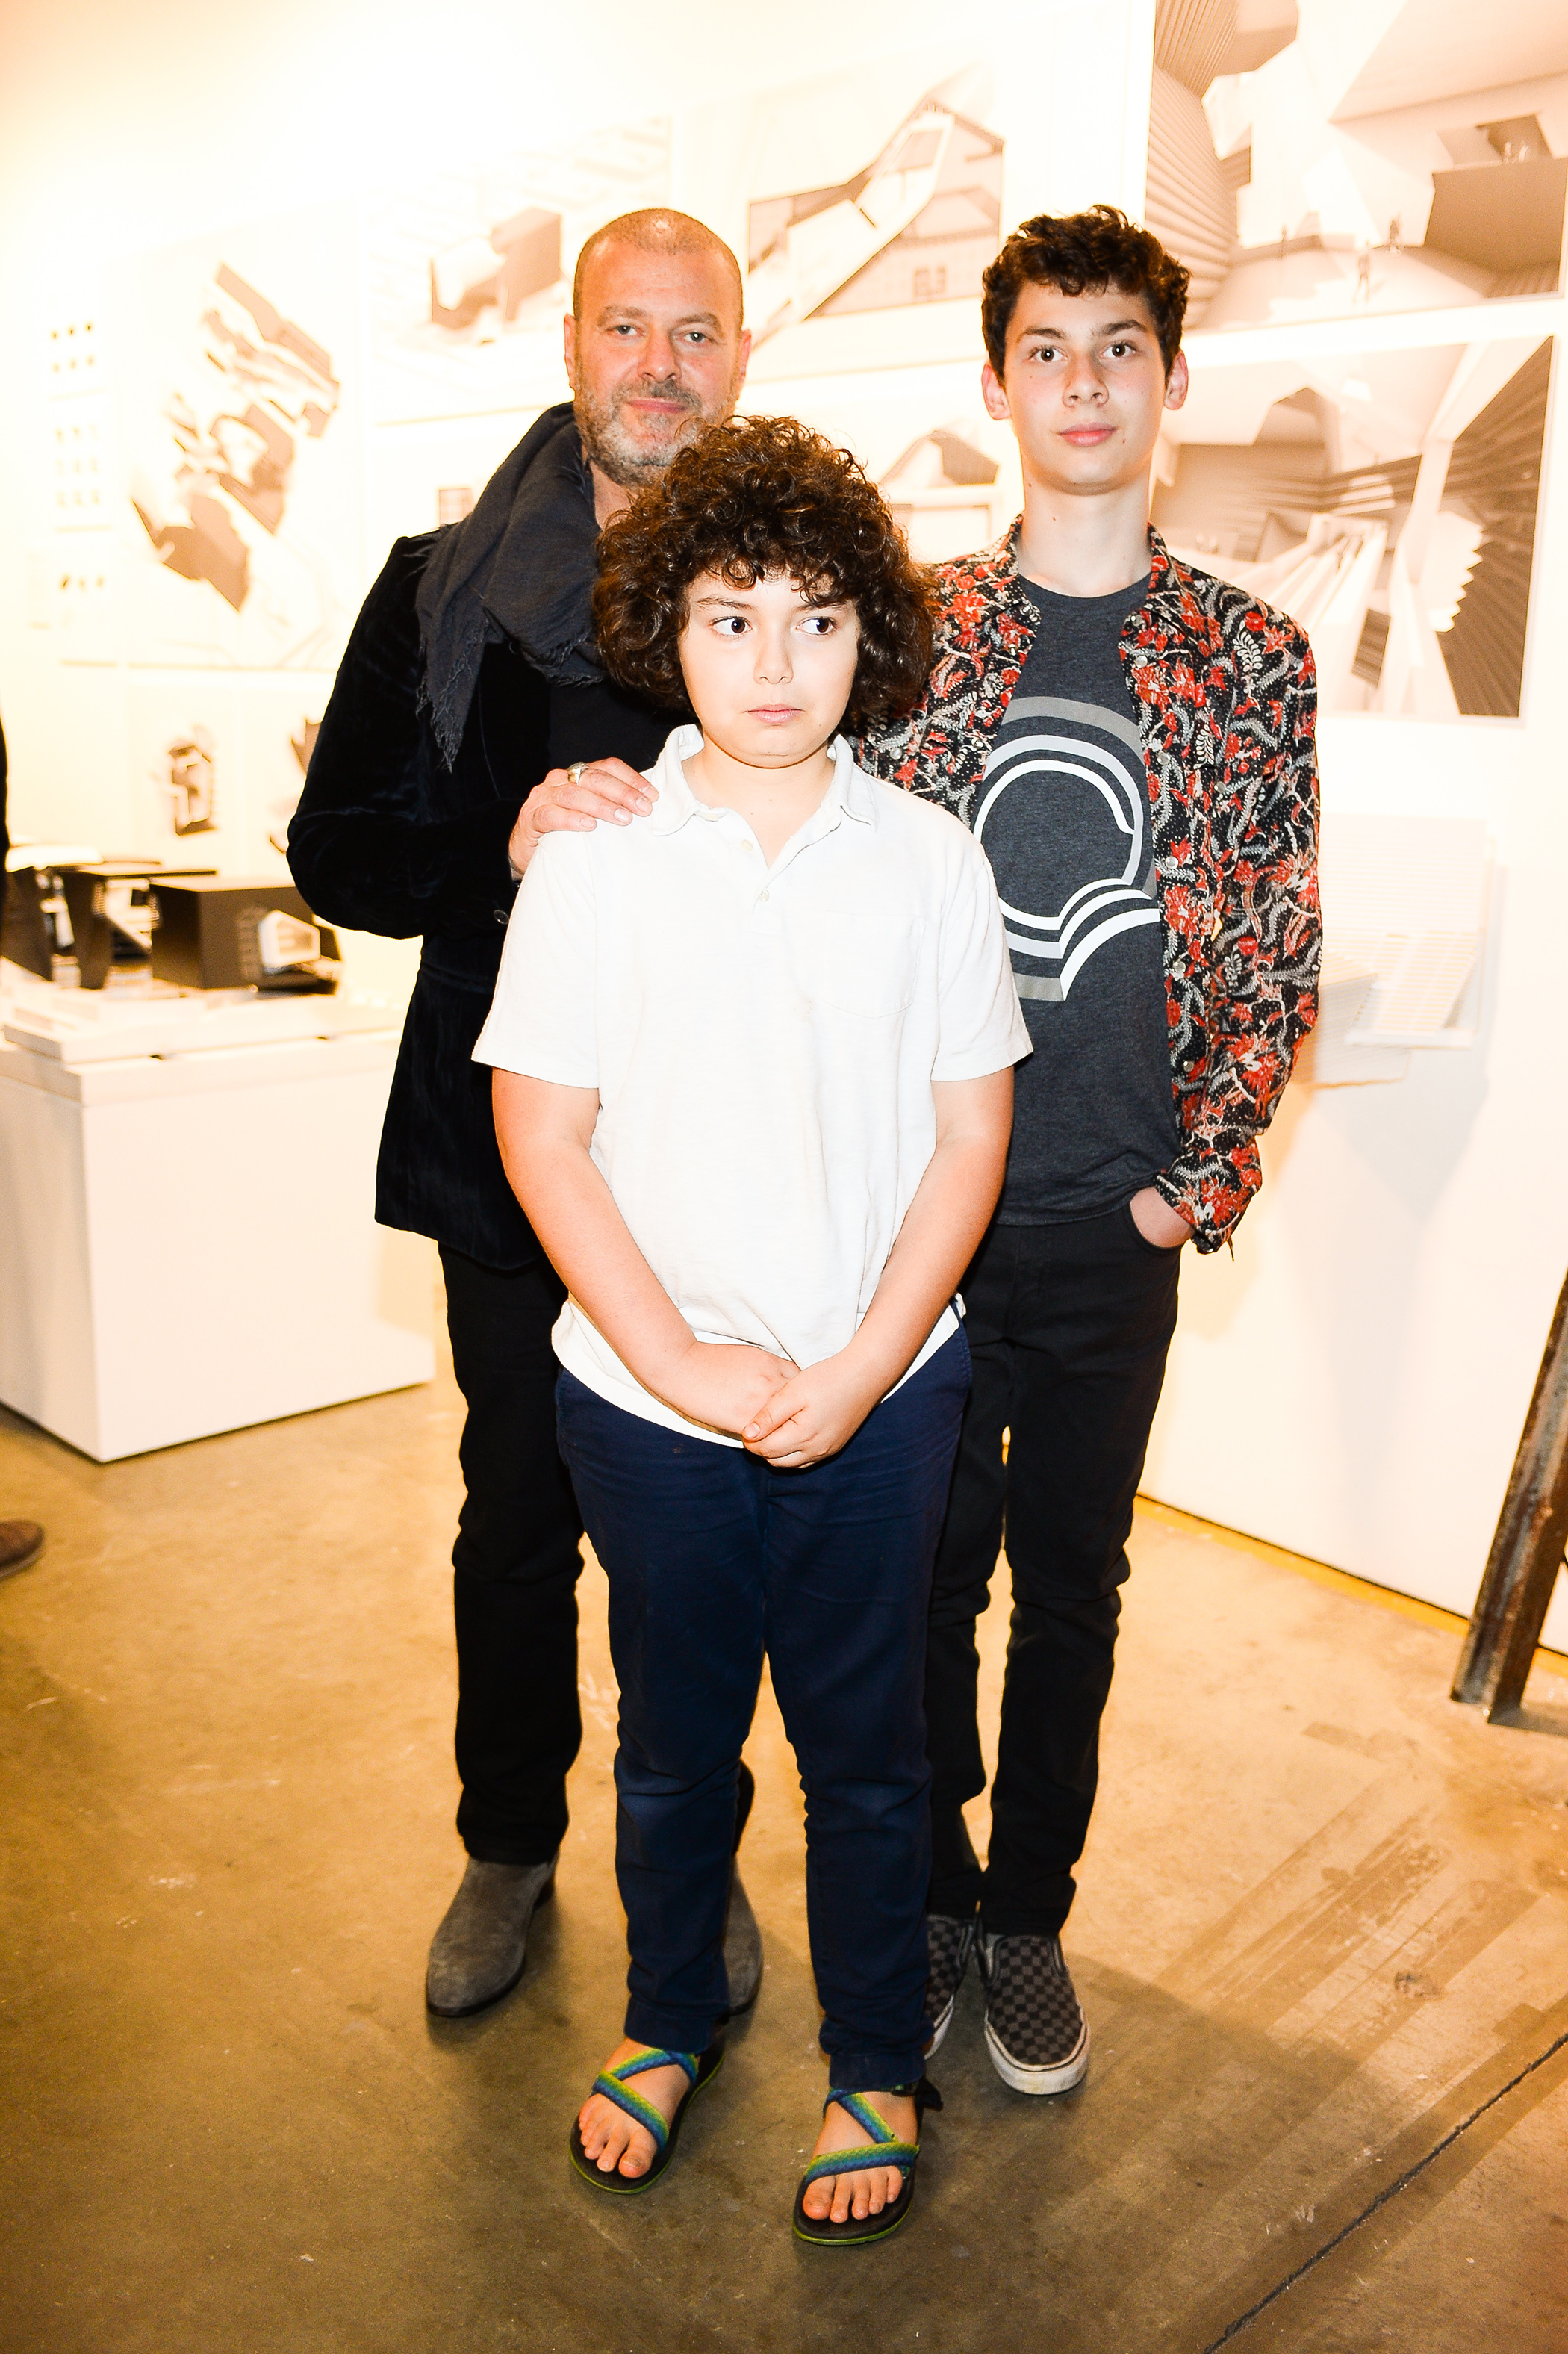 A man and two boys stand and pose for a photo together.